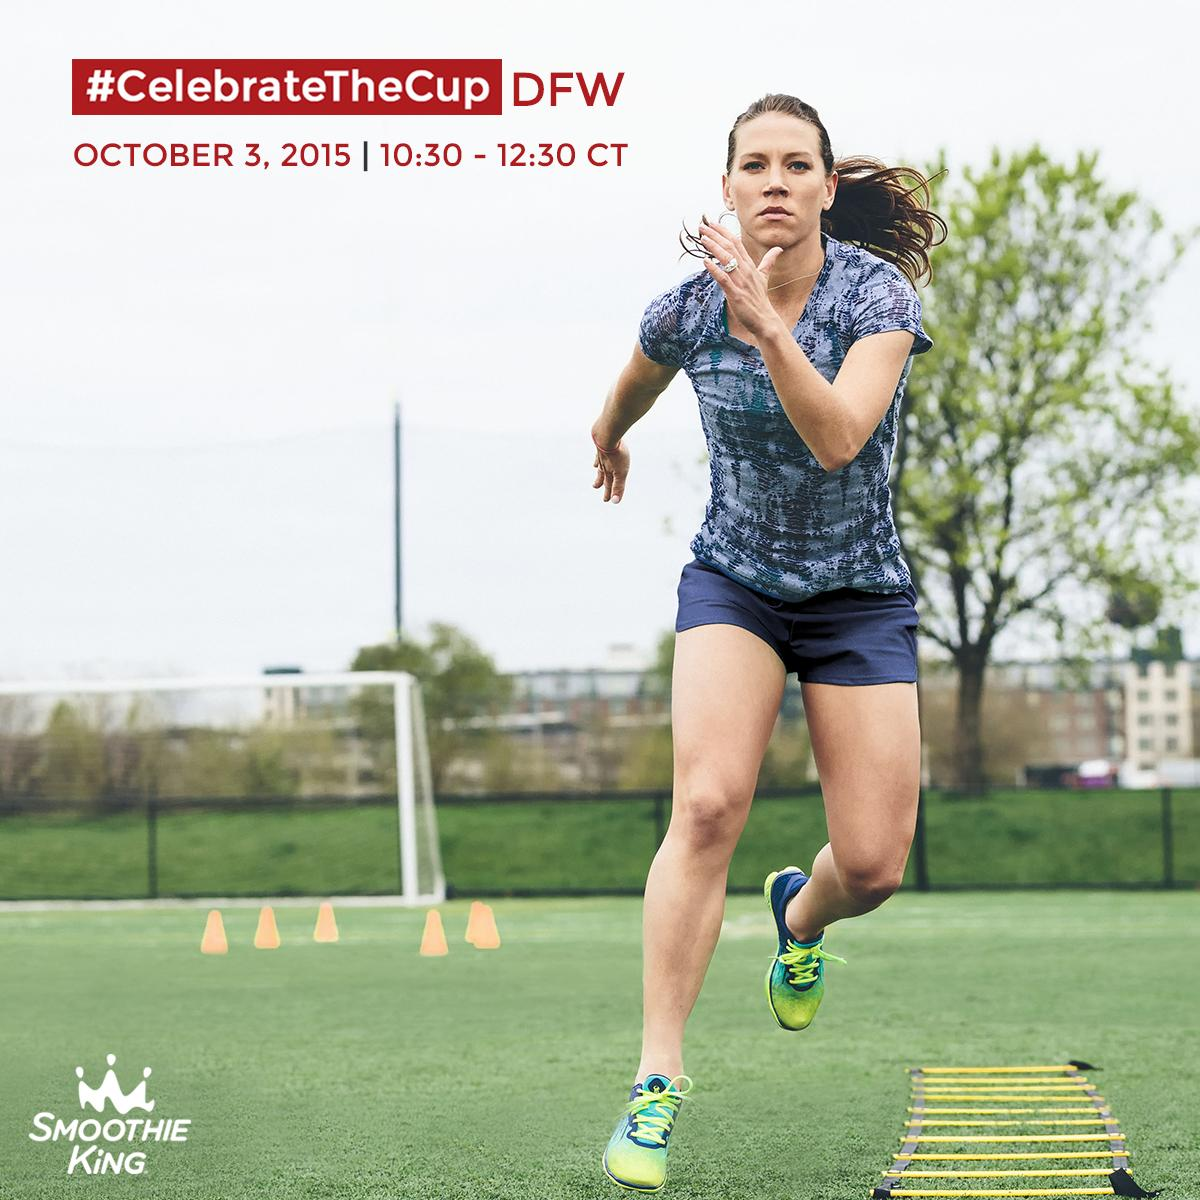 #Dallas, meet @LaurenHoliday12 at the free Smoothie King #CelebrateTheCup Tour! RSVP: https://t.co/MDUX0Qzn6f http://t.co/Lzkg4S1chF